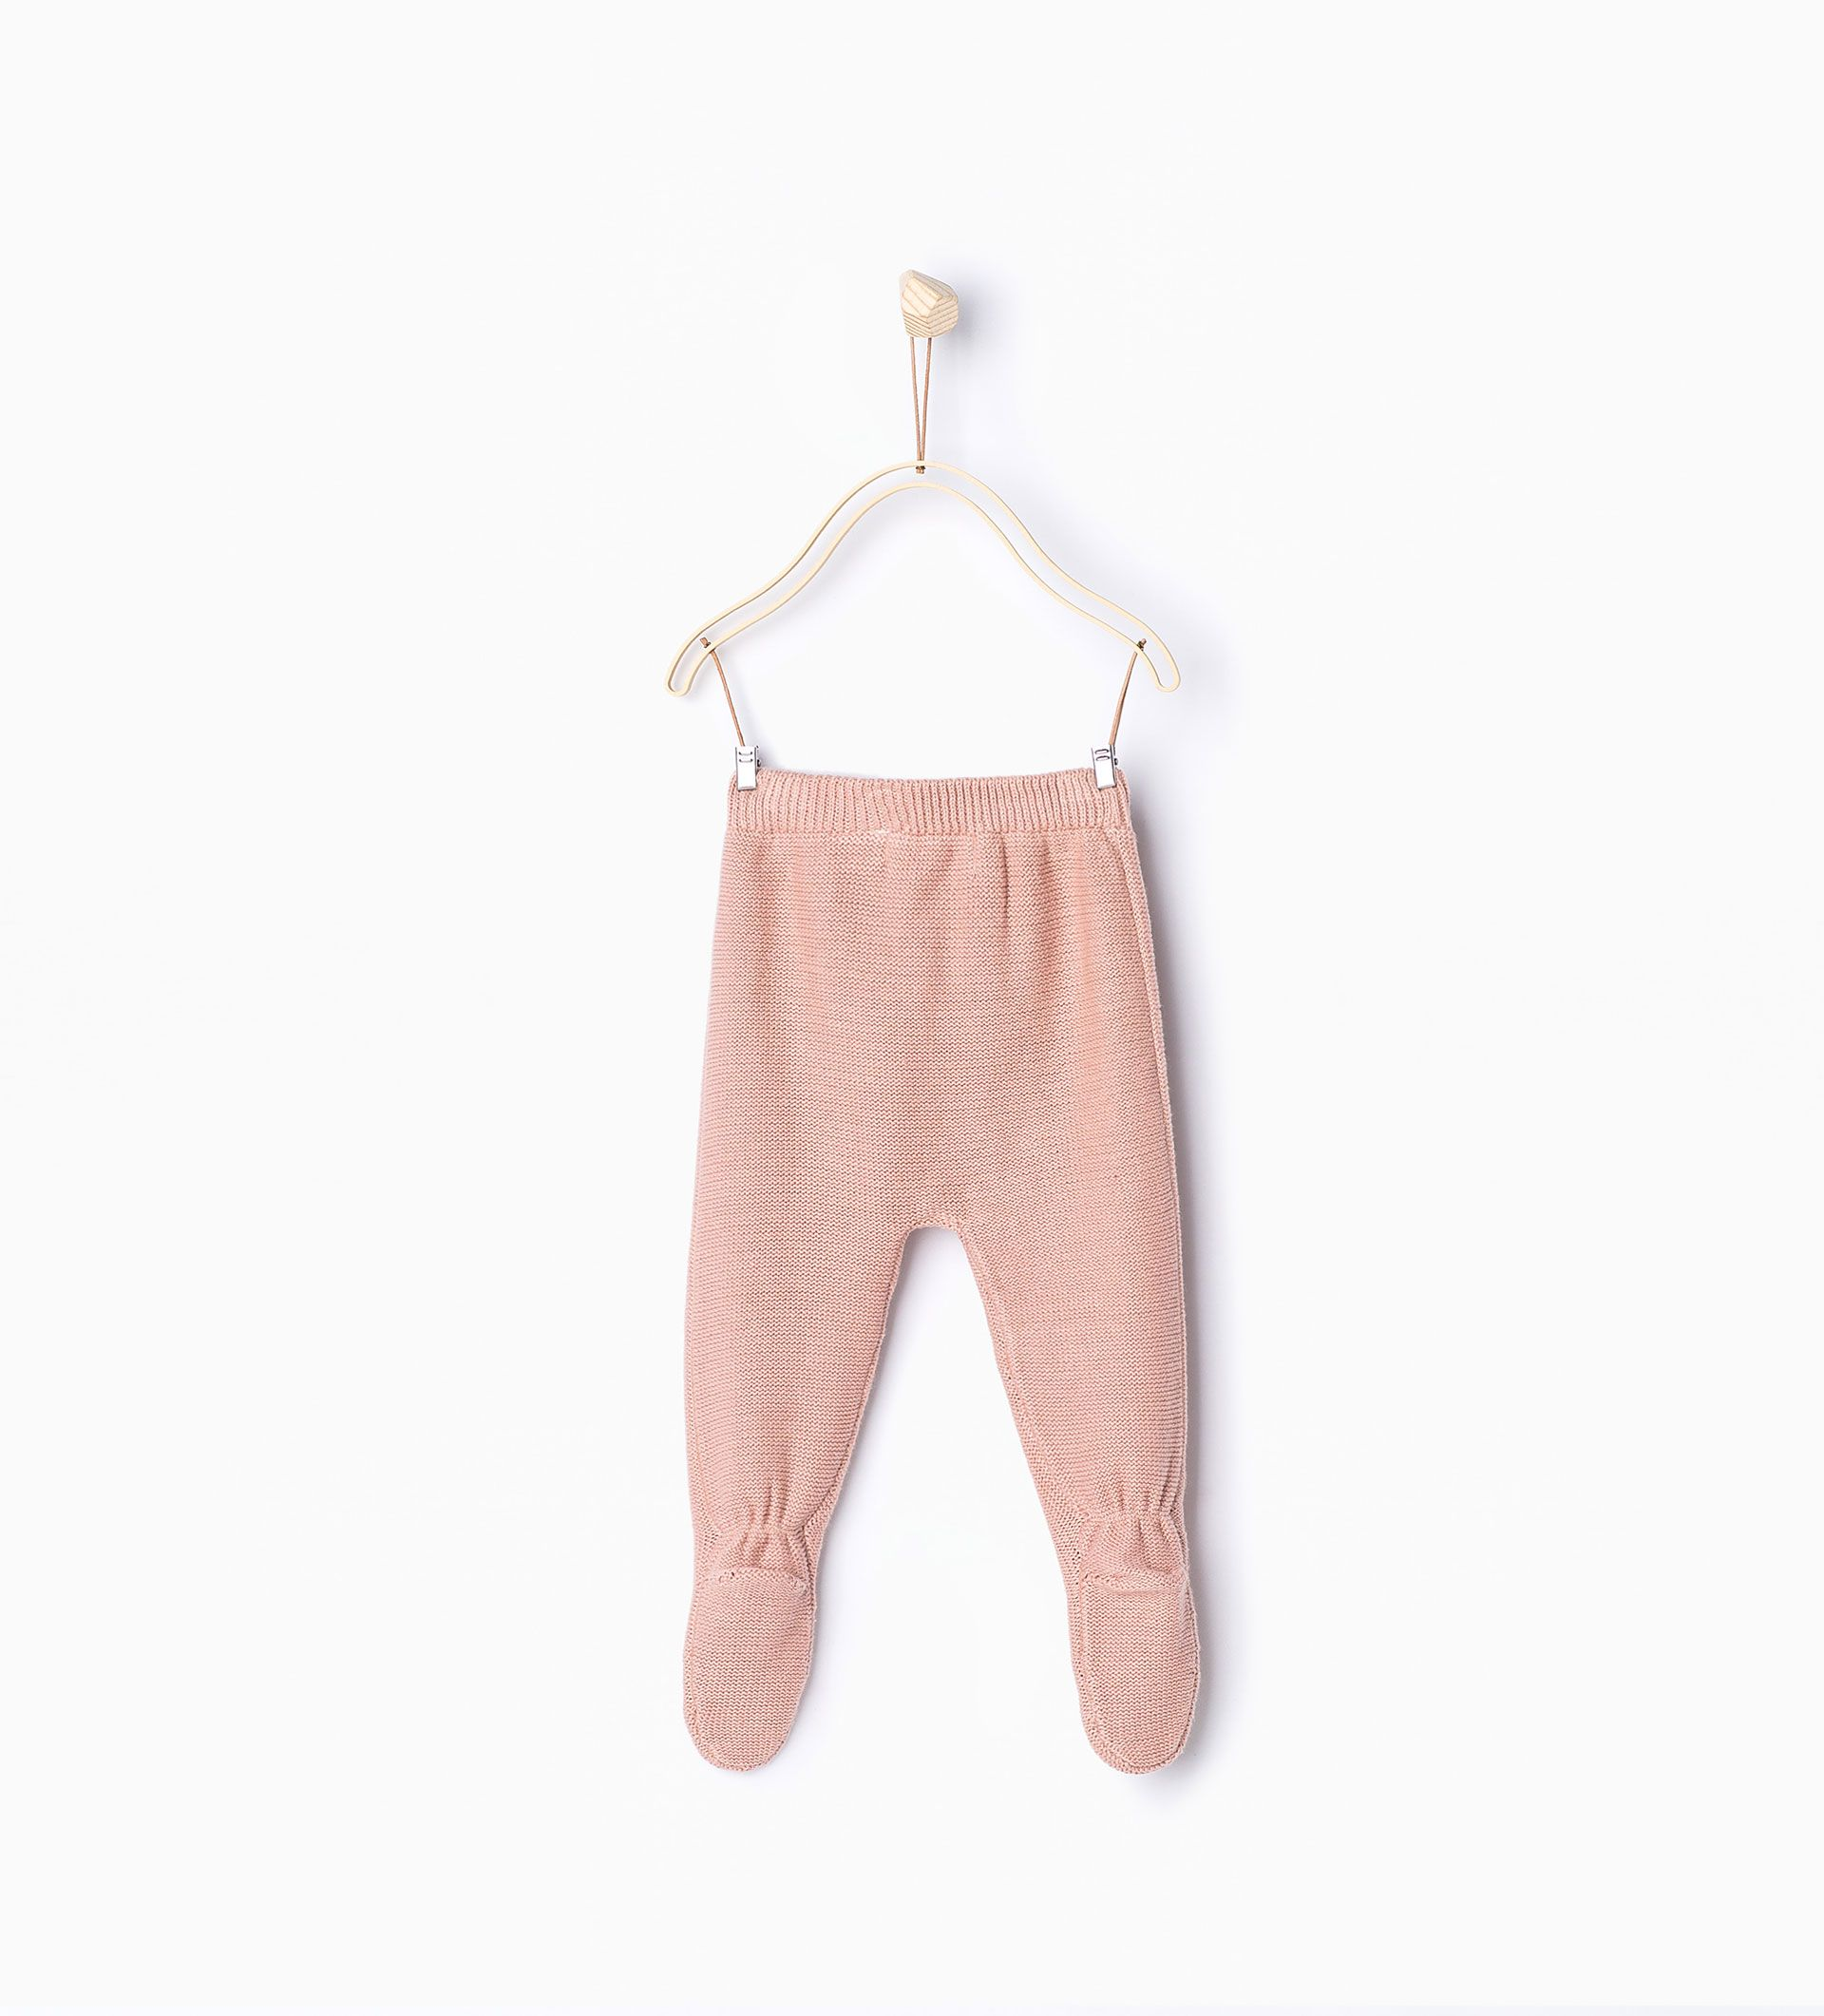 Basic knit leggings - Outfits & romper suits - Mini | 0 - 12 months - KIDS | ZARA United Kingdom